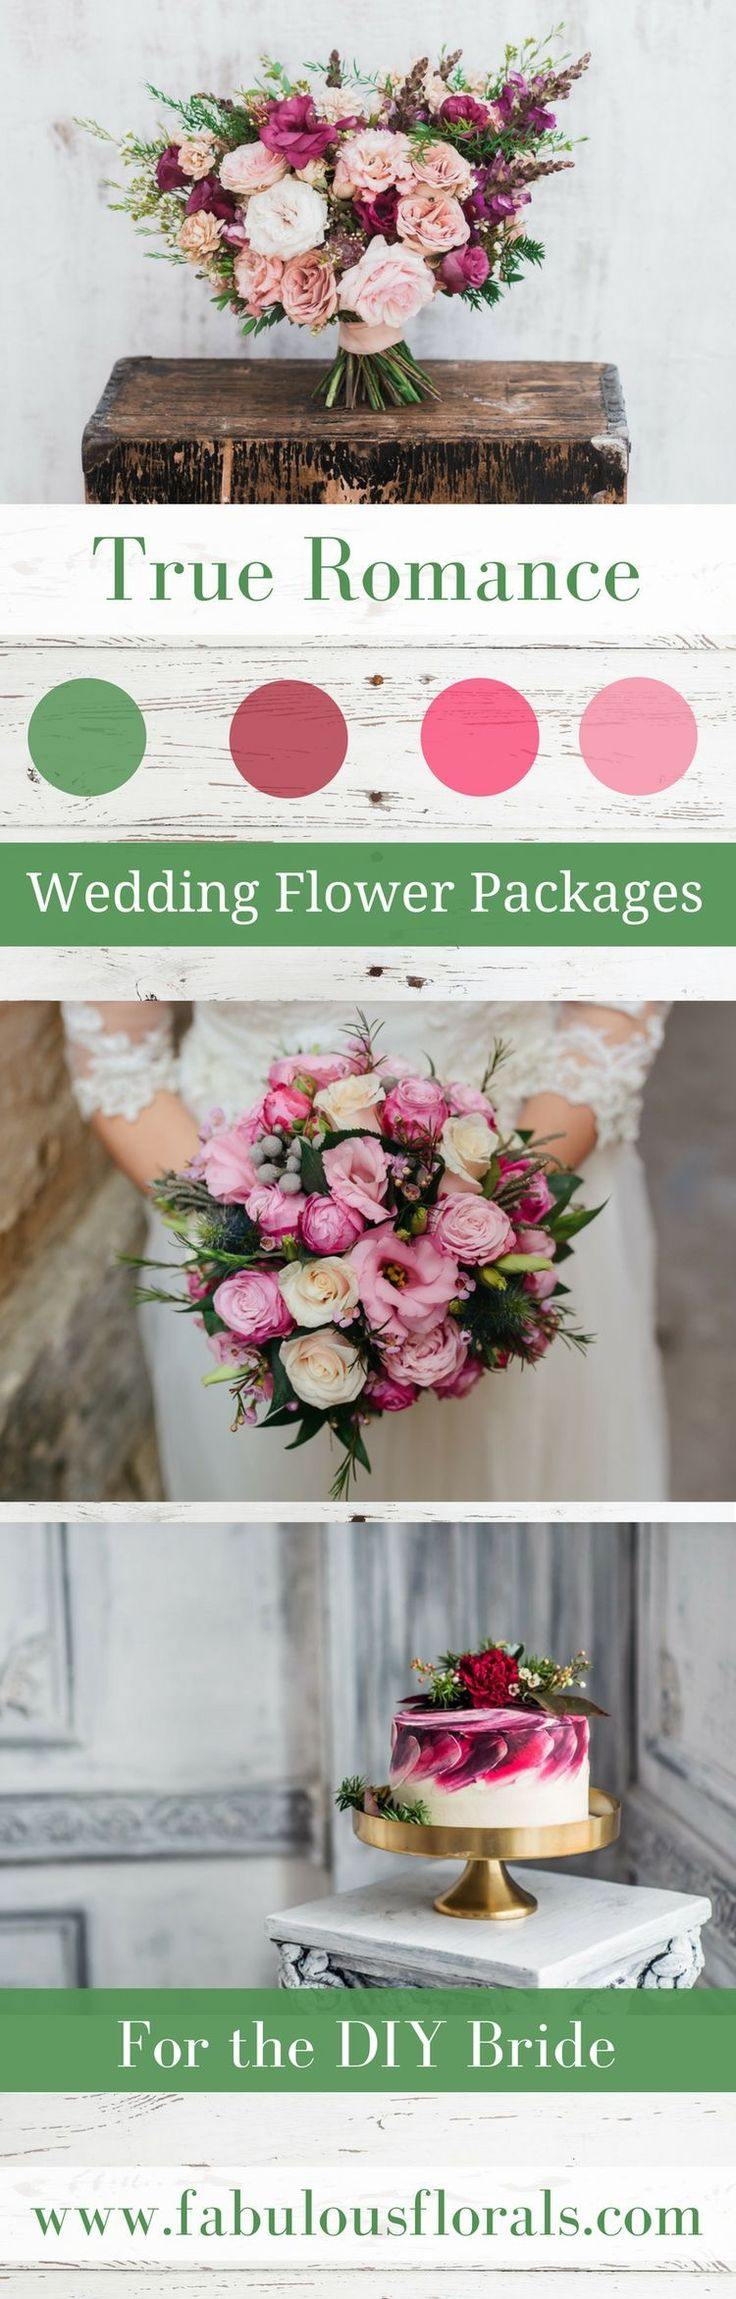 Wedding Trends 2018! Wedding Flowers by color and wedding theme! Pick your palette! #springweddingflowers weddingcolors #weddingflowers #weddingpalette #weddingflowerarrangements